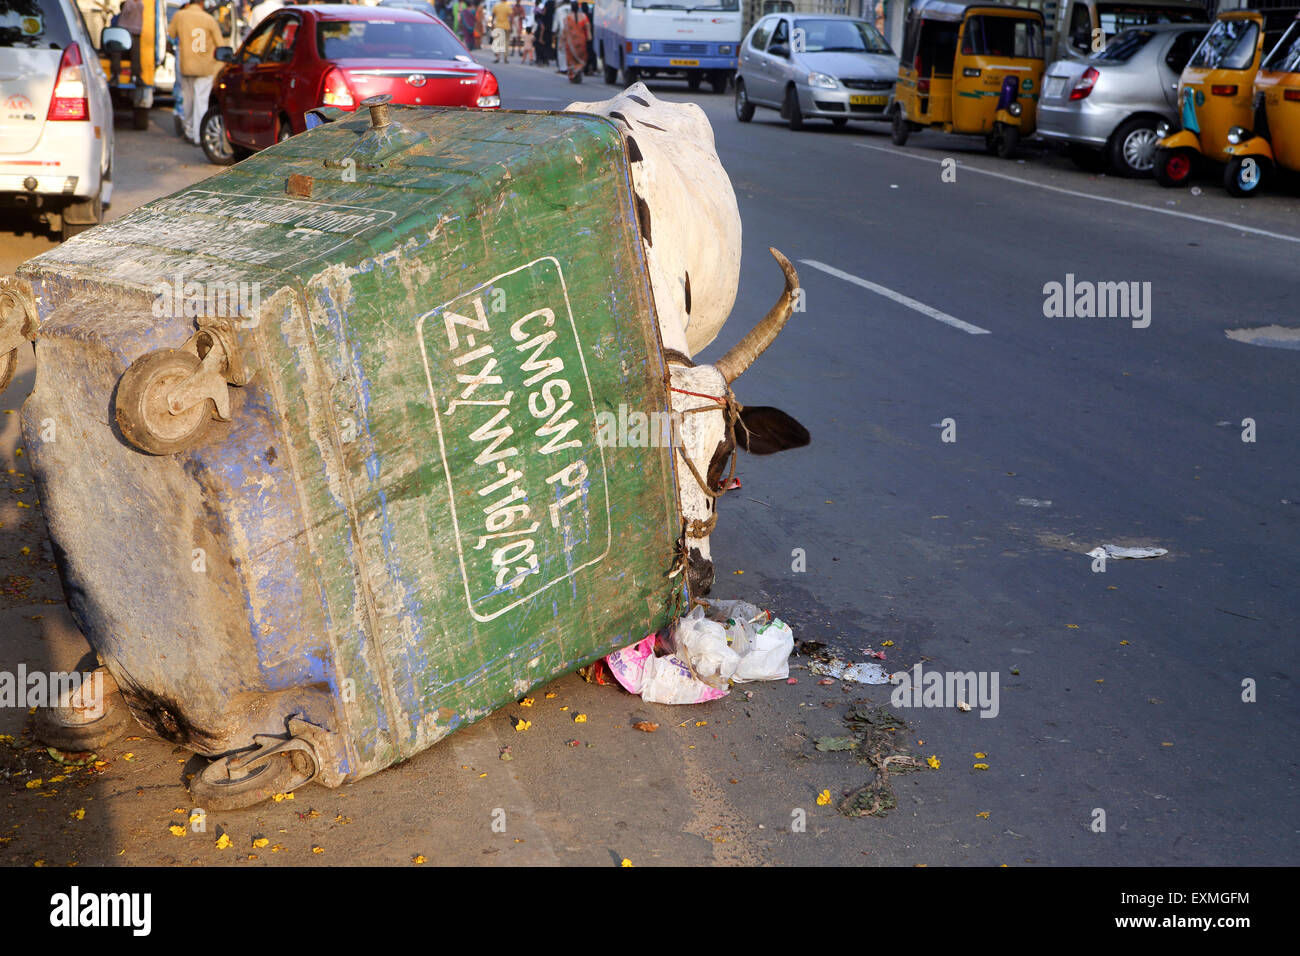 Cow grazing from rubbish skip in Chennai urban street - Stock Image